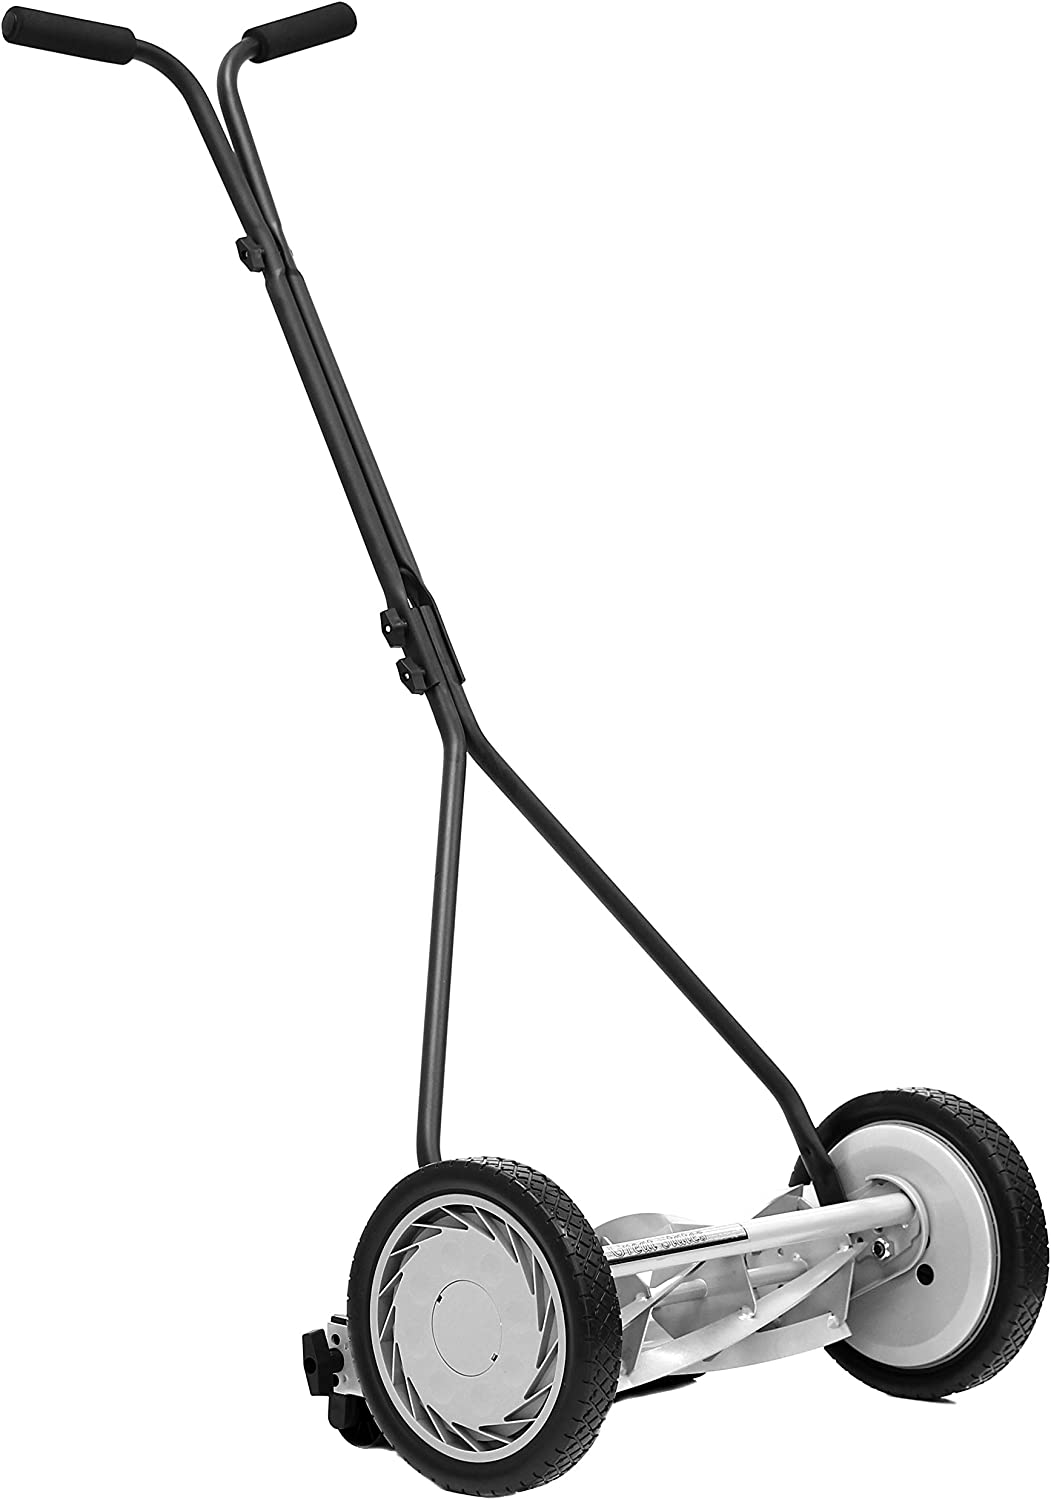 3. Great States 415-16 16-Inch Standard Full Feature Push Reel Lawn Mower